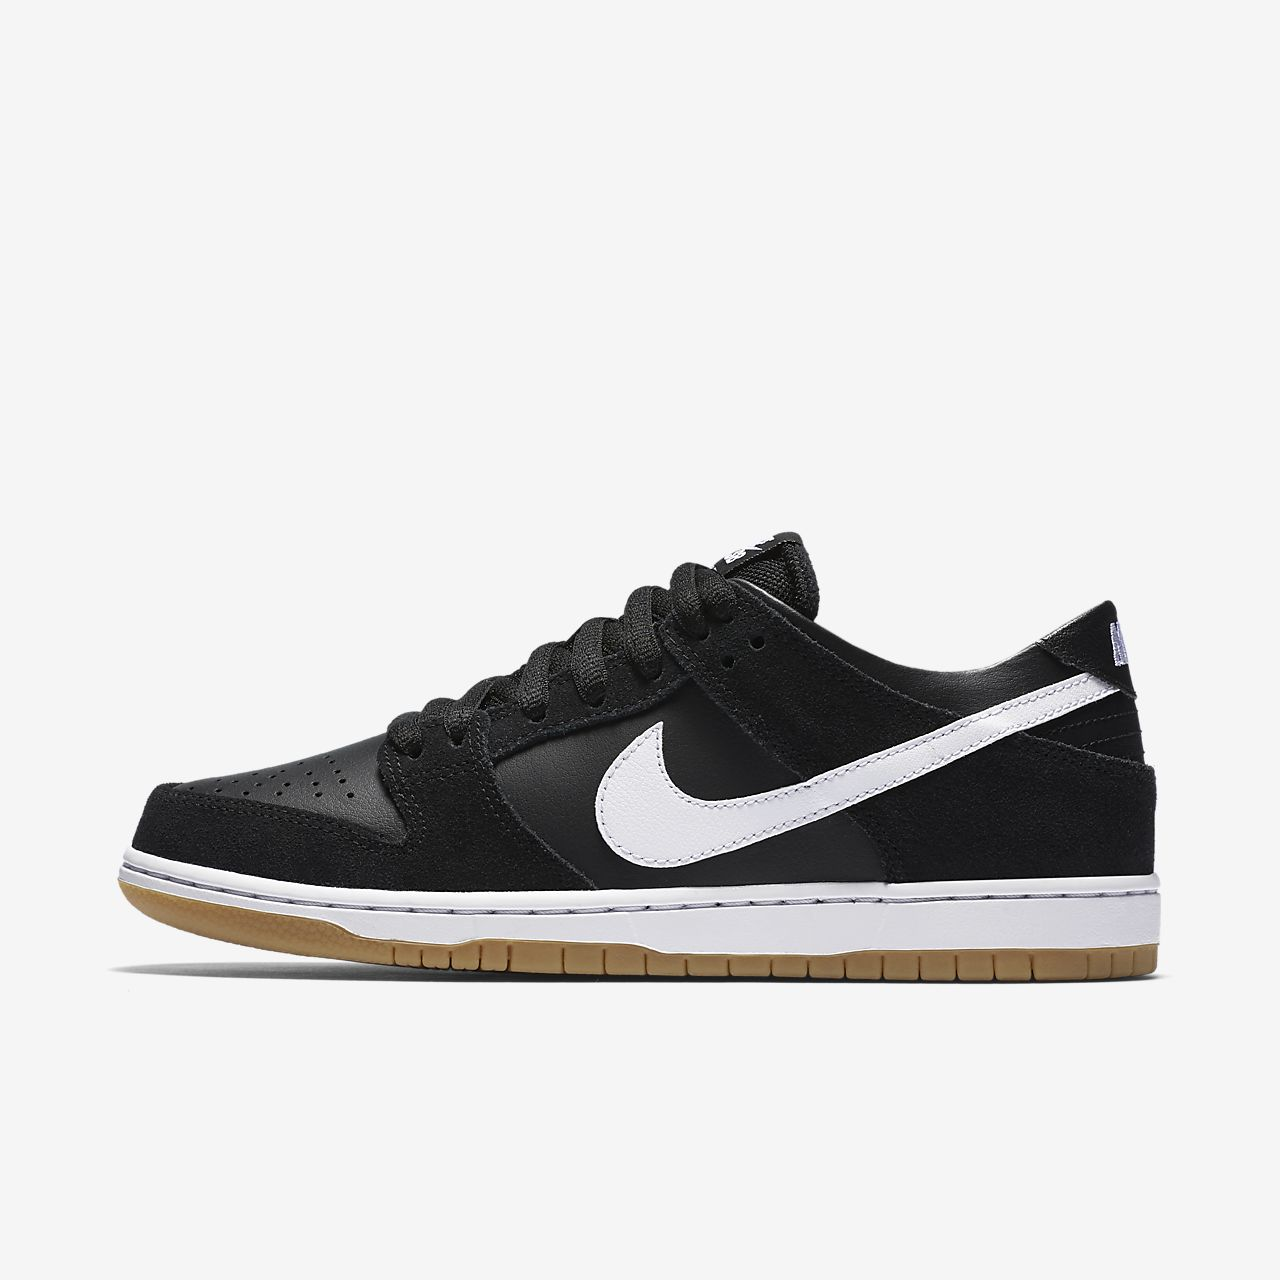 Nike SB Dunk Low Pro Mens Skateboarding Shoe